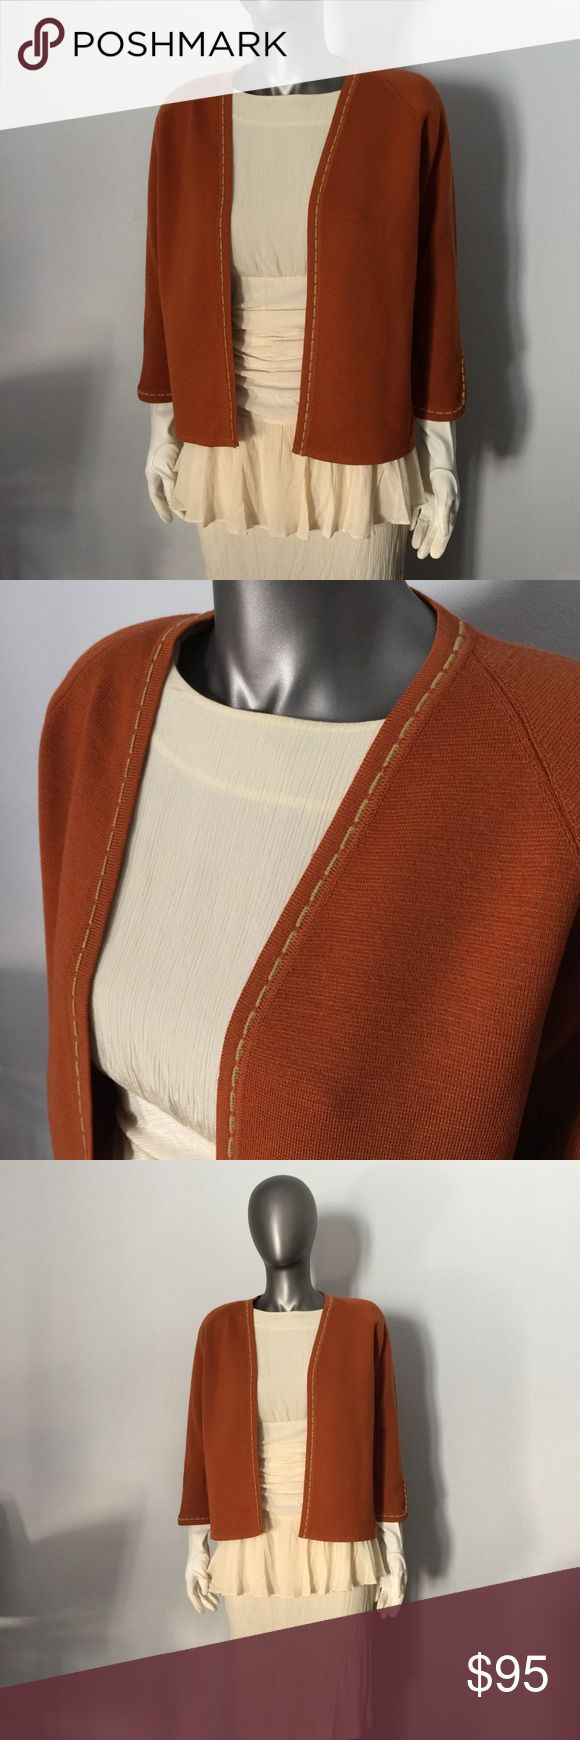 """VINTAGE Helen Smith of Pasadena Wool Cardigan VINTAGE 'HELEN SMITH OF PASADENA' Cardigan Sweater in a beautiful rustic burnt orange color with mustard yellow stitching around the collar, front, as well as sleeves. 100% Wool. Made in Italy. From the 1960's.   SIZE: No size tag (approx Medium)  APPROX MEASUREMENTS: 19"""" (pit to pit when Sweater is laid flat) 22.75"""" (top of shoulder to bottom hem)  CONDITION: Excellent Vintage (no stains, no rips, no tears) (Near Mint Condition)  ***NOTE: Dress…"""